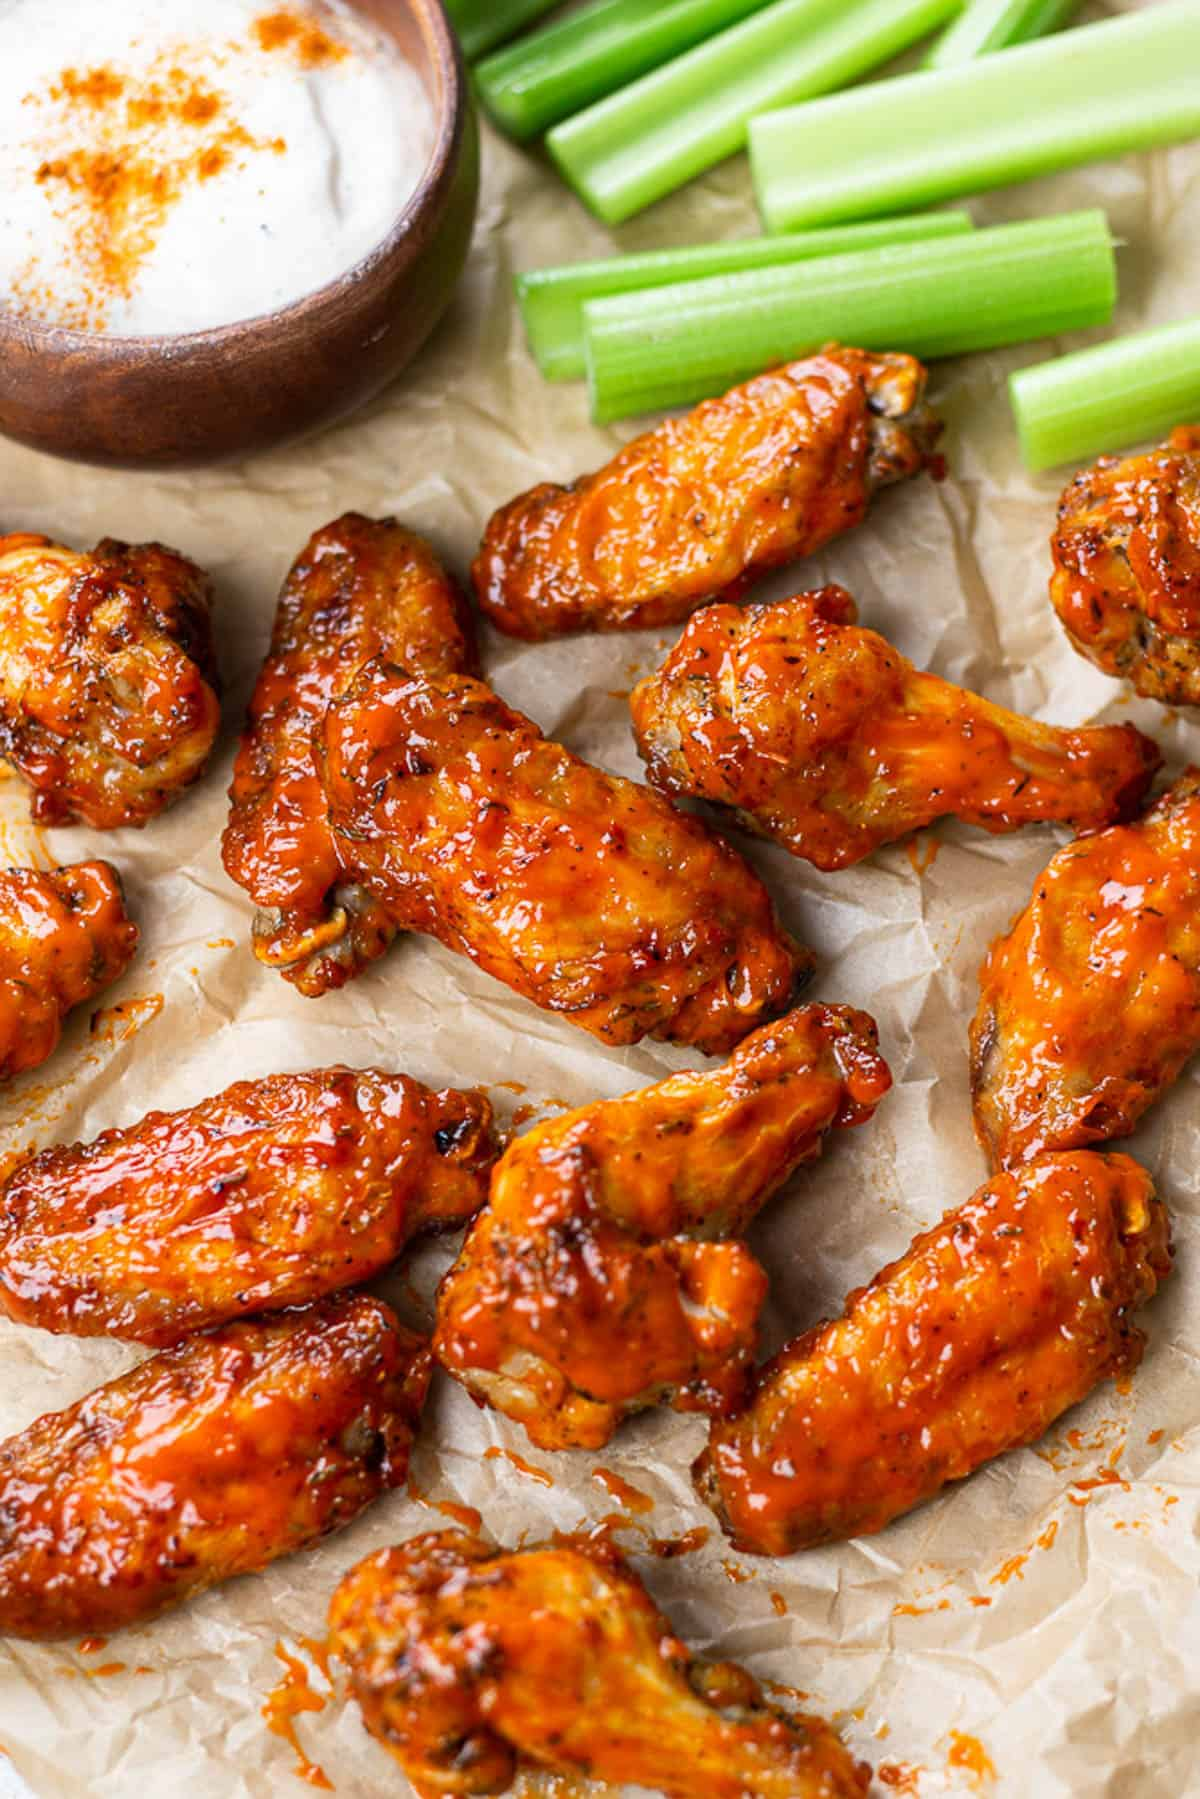 Buffalo wings on a parchment paper with ranch sauce and celery.